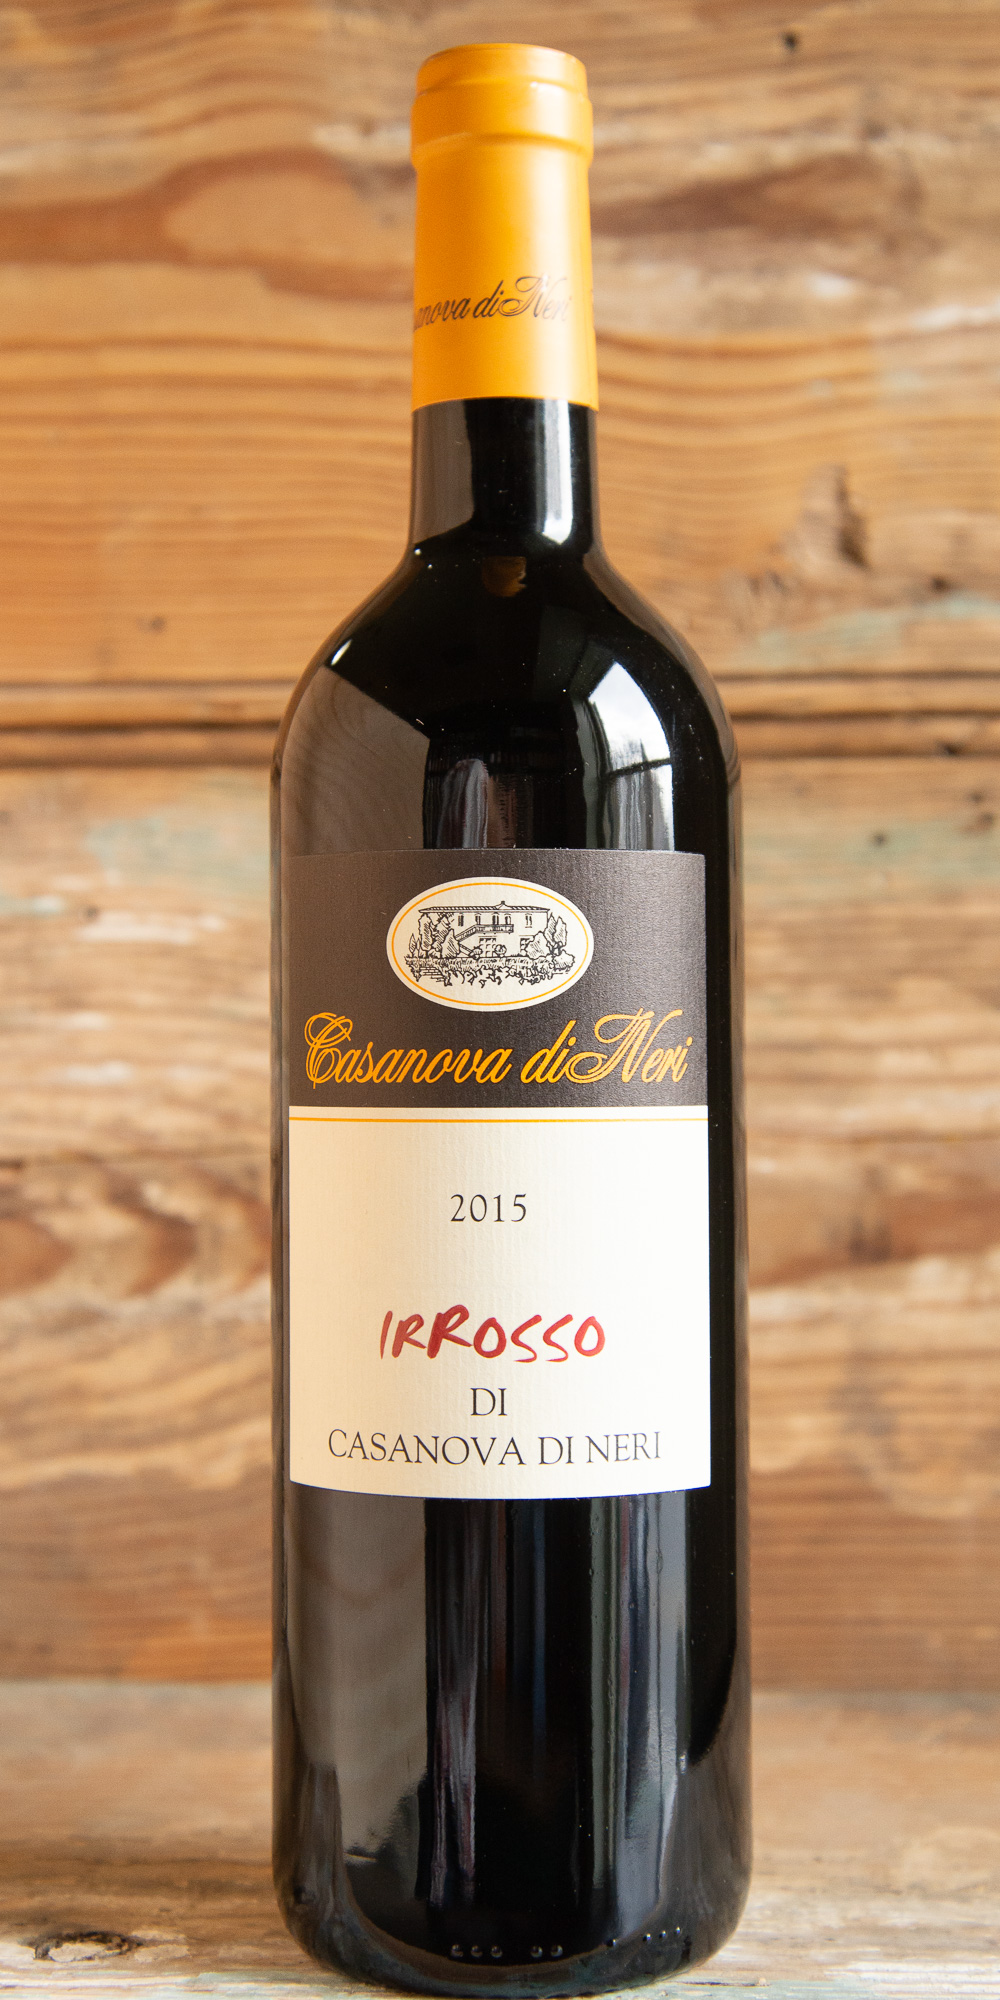 "Casanova di Neri Irrosso Toscana 2015 - Origin: ItalyRetail: $23.95 | Sale $21.55Casanova di Neri was established in 1971 when Giovanni Neri acquired a large estate within Montalcino. In 1991, his son Giacomo took over direction of the estate and winemaking.This is a wine with character and personality that can be called a ""young Brunello"" with fruit sourced from the estate's oldest vineyards. All the fruit was hand harvest followed by a spontaneus fermentation without the addition of artificial yeast and aged in oak for one year. This wine is intense ruby red in the glass with aromas of wild cherry and violets. The palate expresses the perfect balance of fruit and structure. It can be enjoyed now or aged in the bottle to develop for many years to come. Enjoy with veal, pasta, osso buco, or aged cheeses.85% Sangiovese 